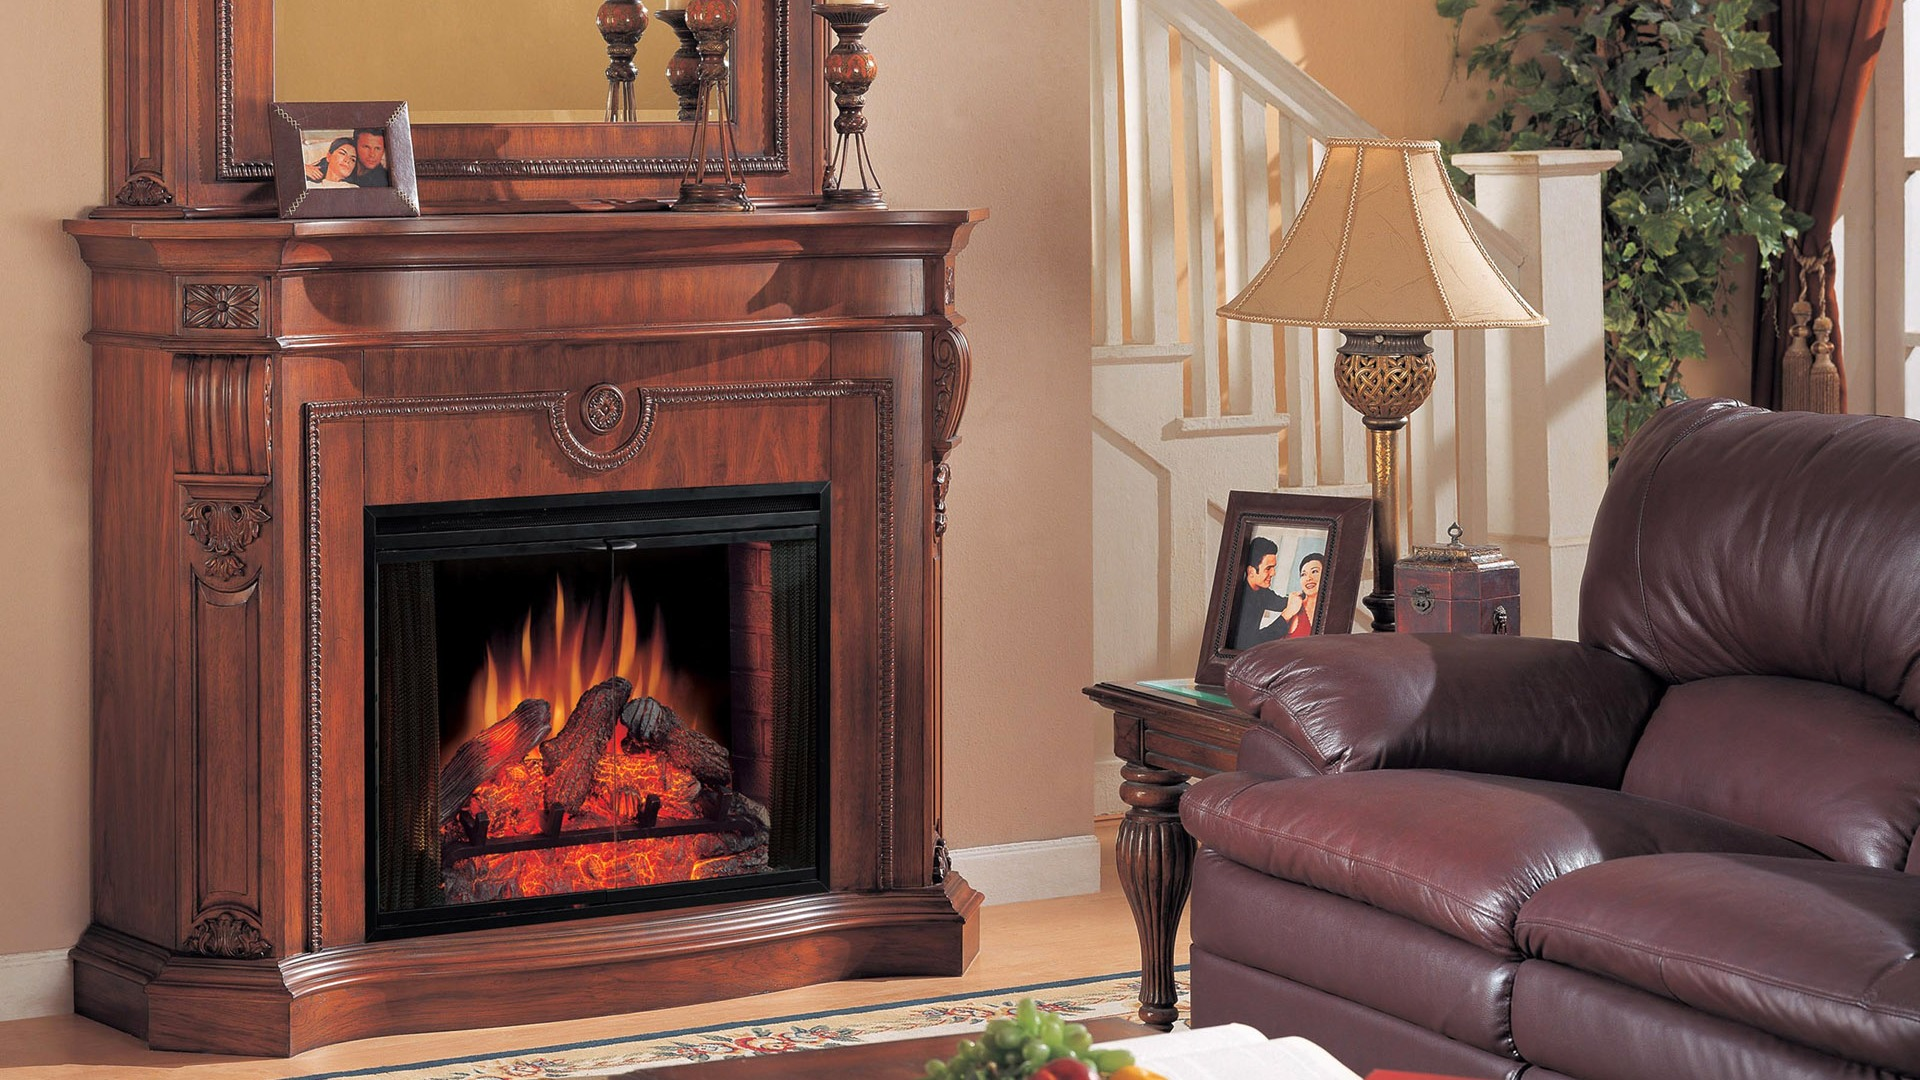 western fireplace wallpaper - photo #1